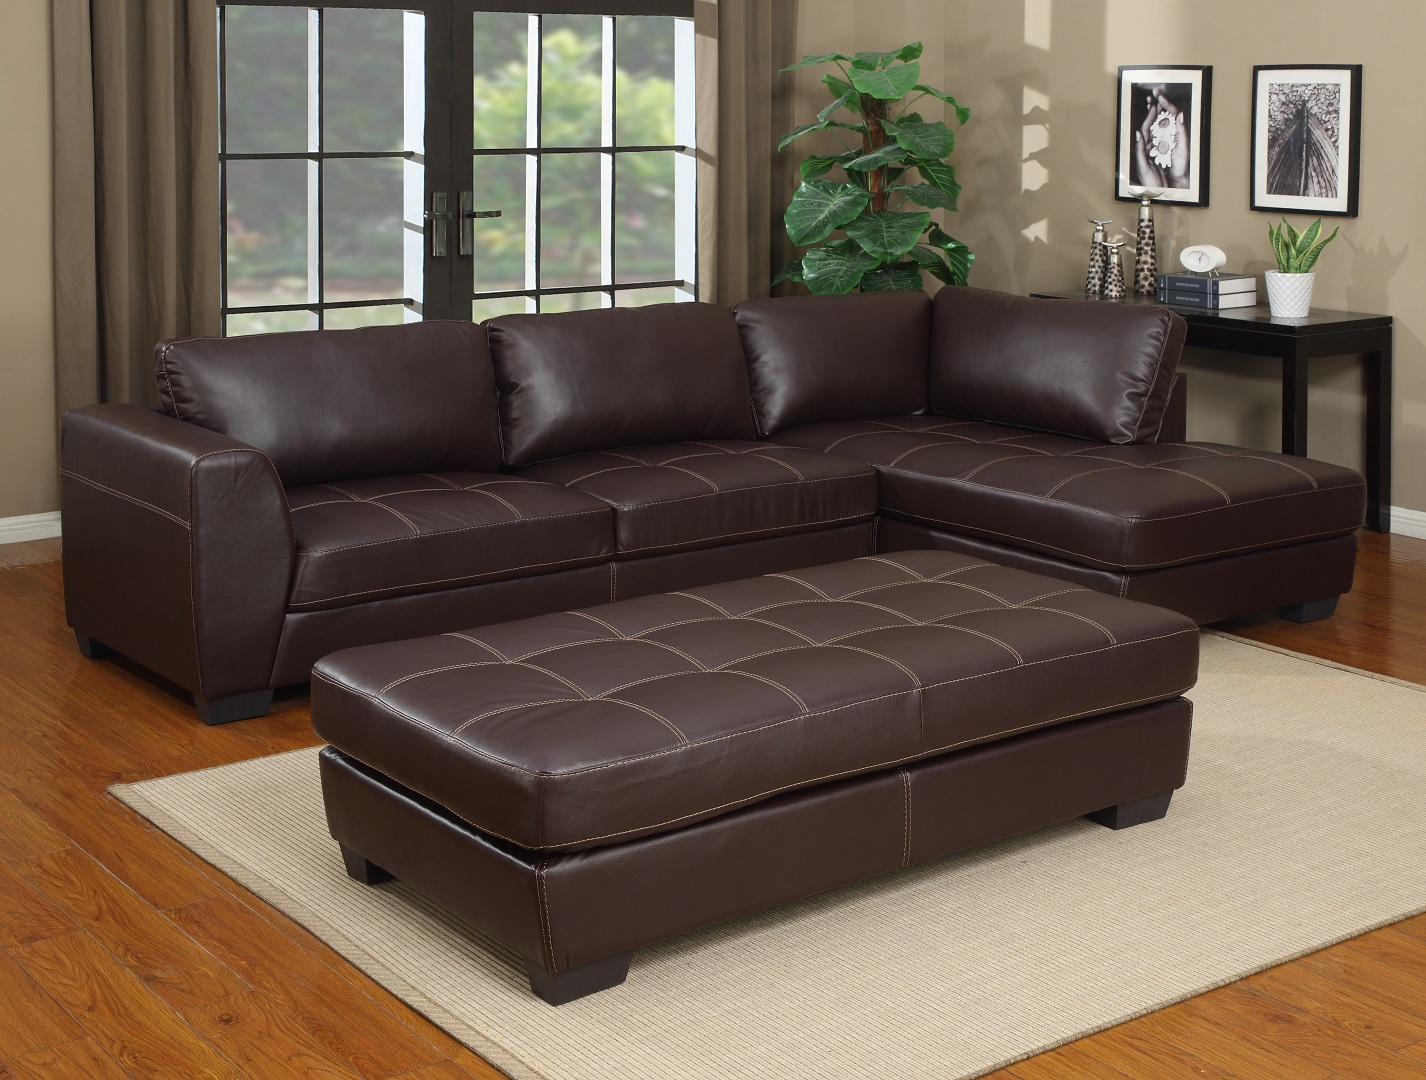 GL6609 Liverpool Sectional